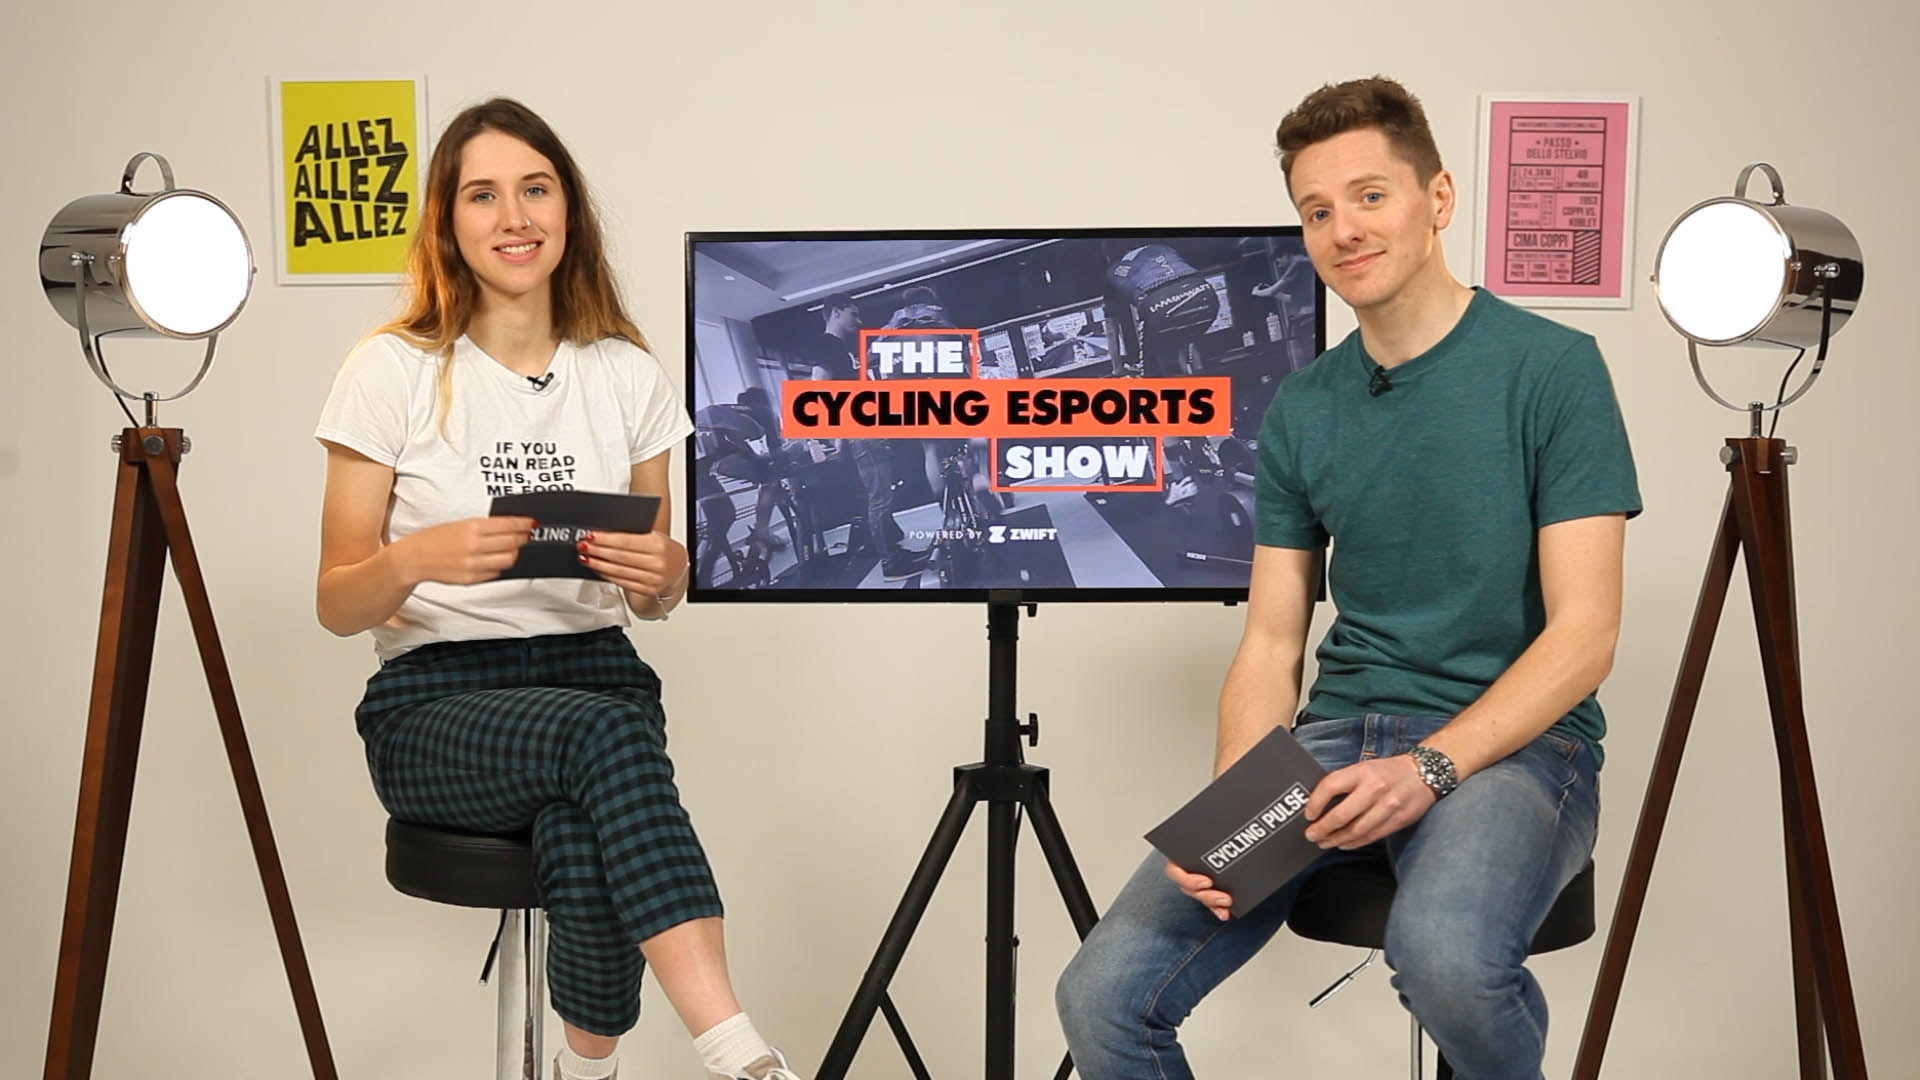 The Cycling Esports Show